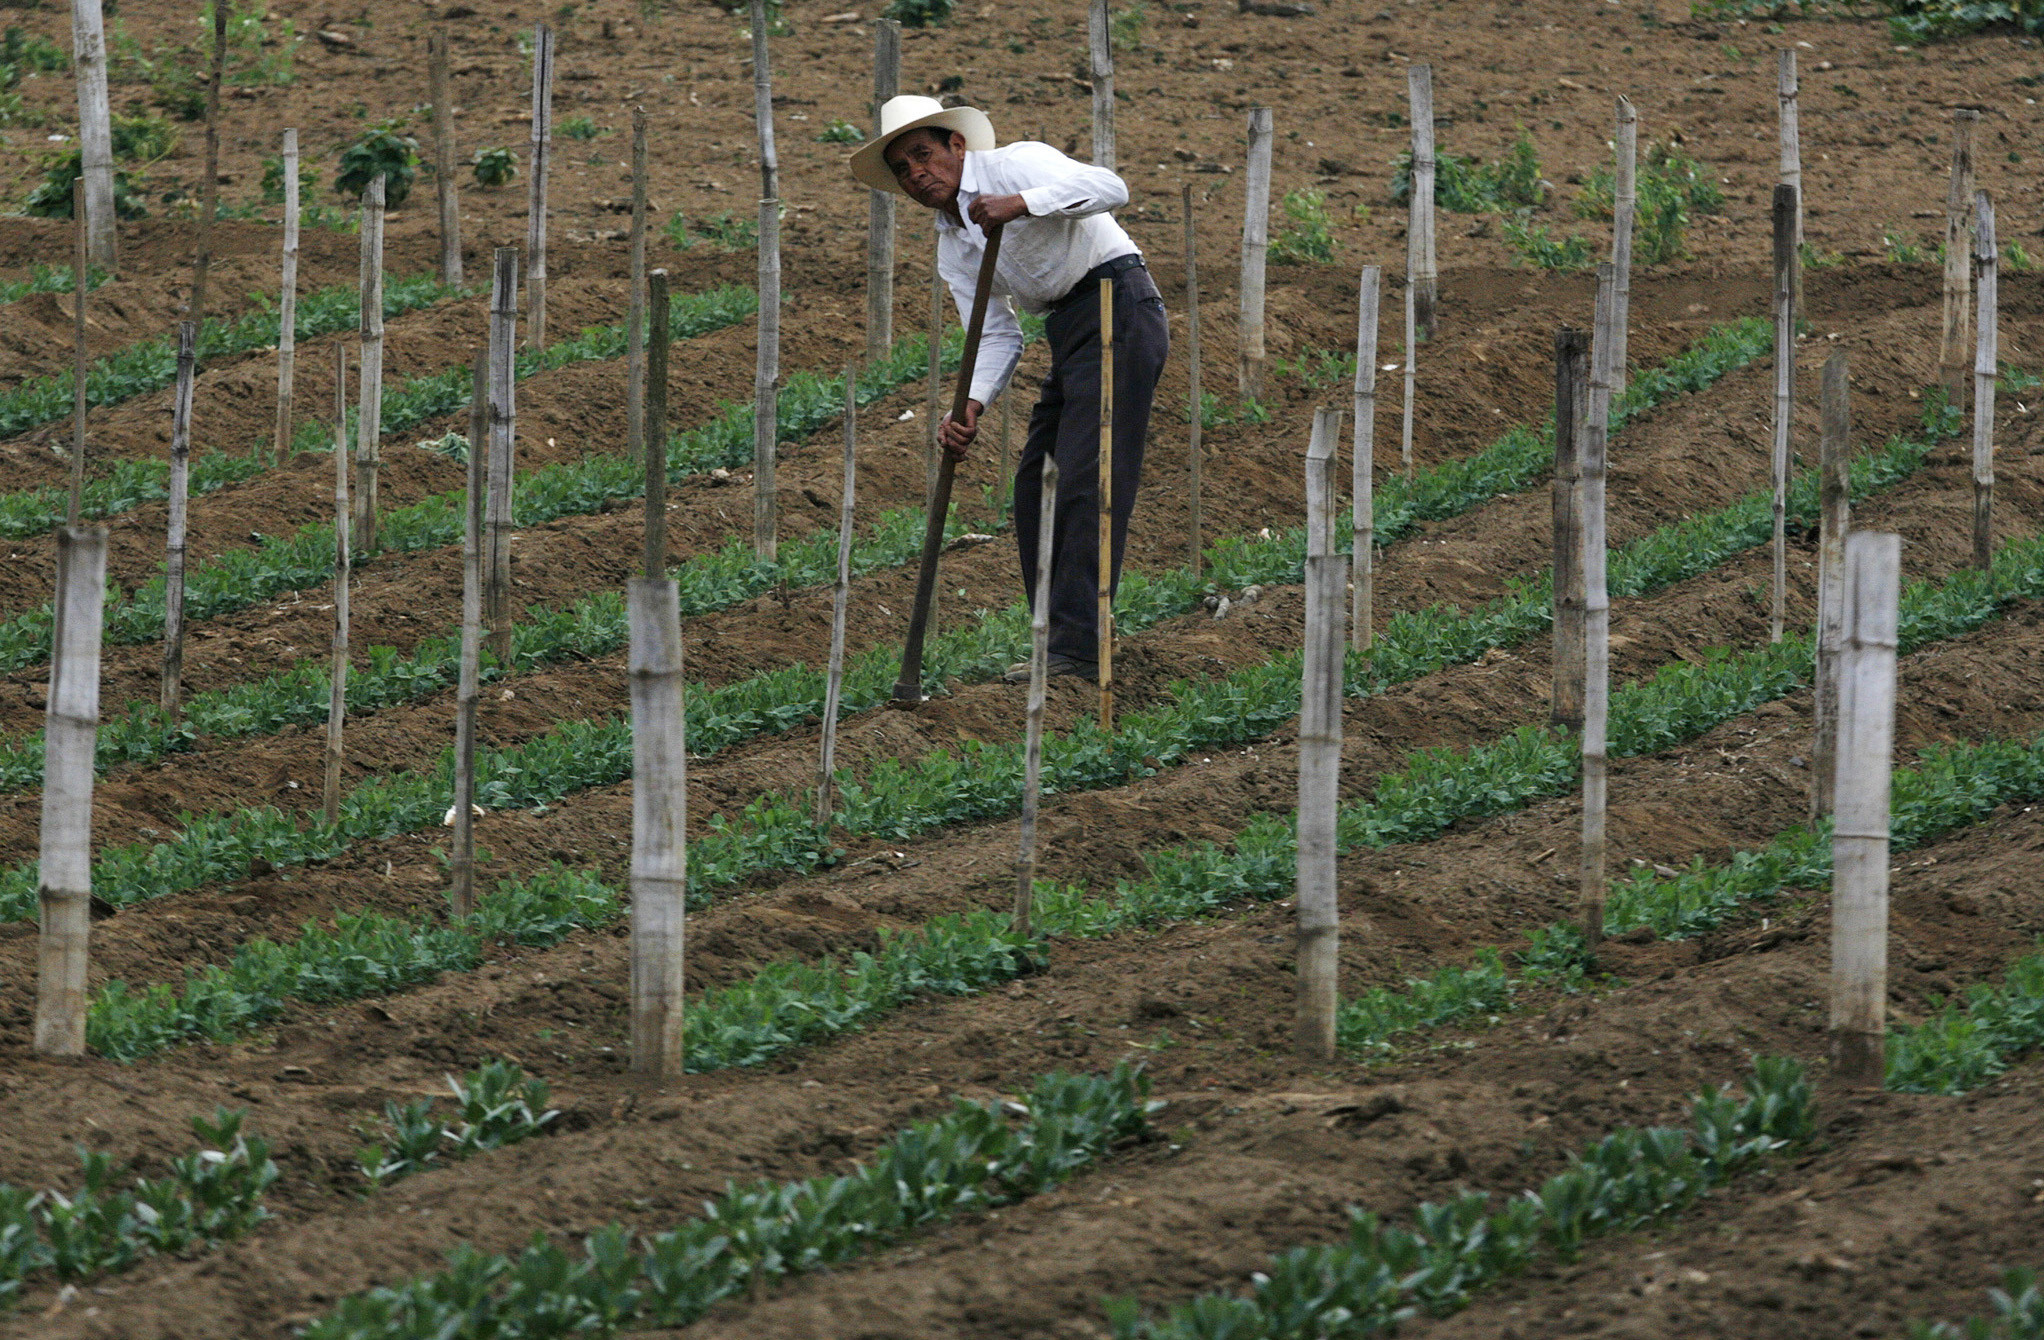 A farmer tends his crops in Tecpan, Guatemala May 5, 2008. Many small scale farmers in Central America are being forced reduce the amount they plant due to the high cost of chemical fertilizers, which use petroleum as a base. To go with CENTAM/FOOD. REUTERS/Daniel LeClair  (GUATEMALA) - GM1E4570PDT01